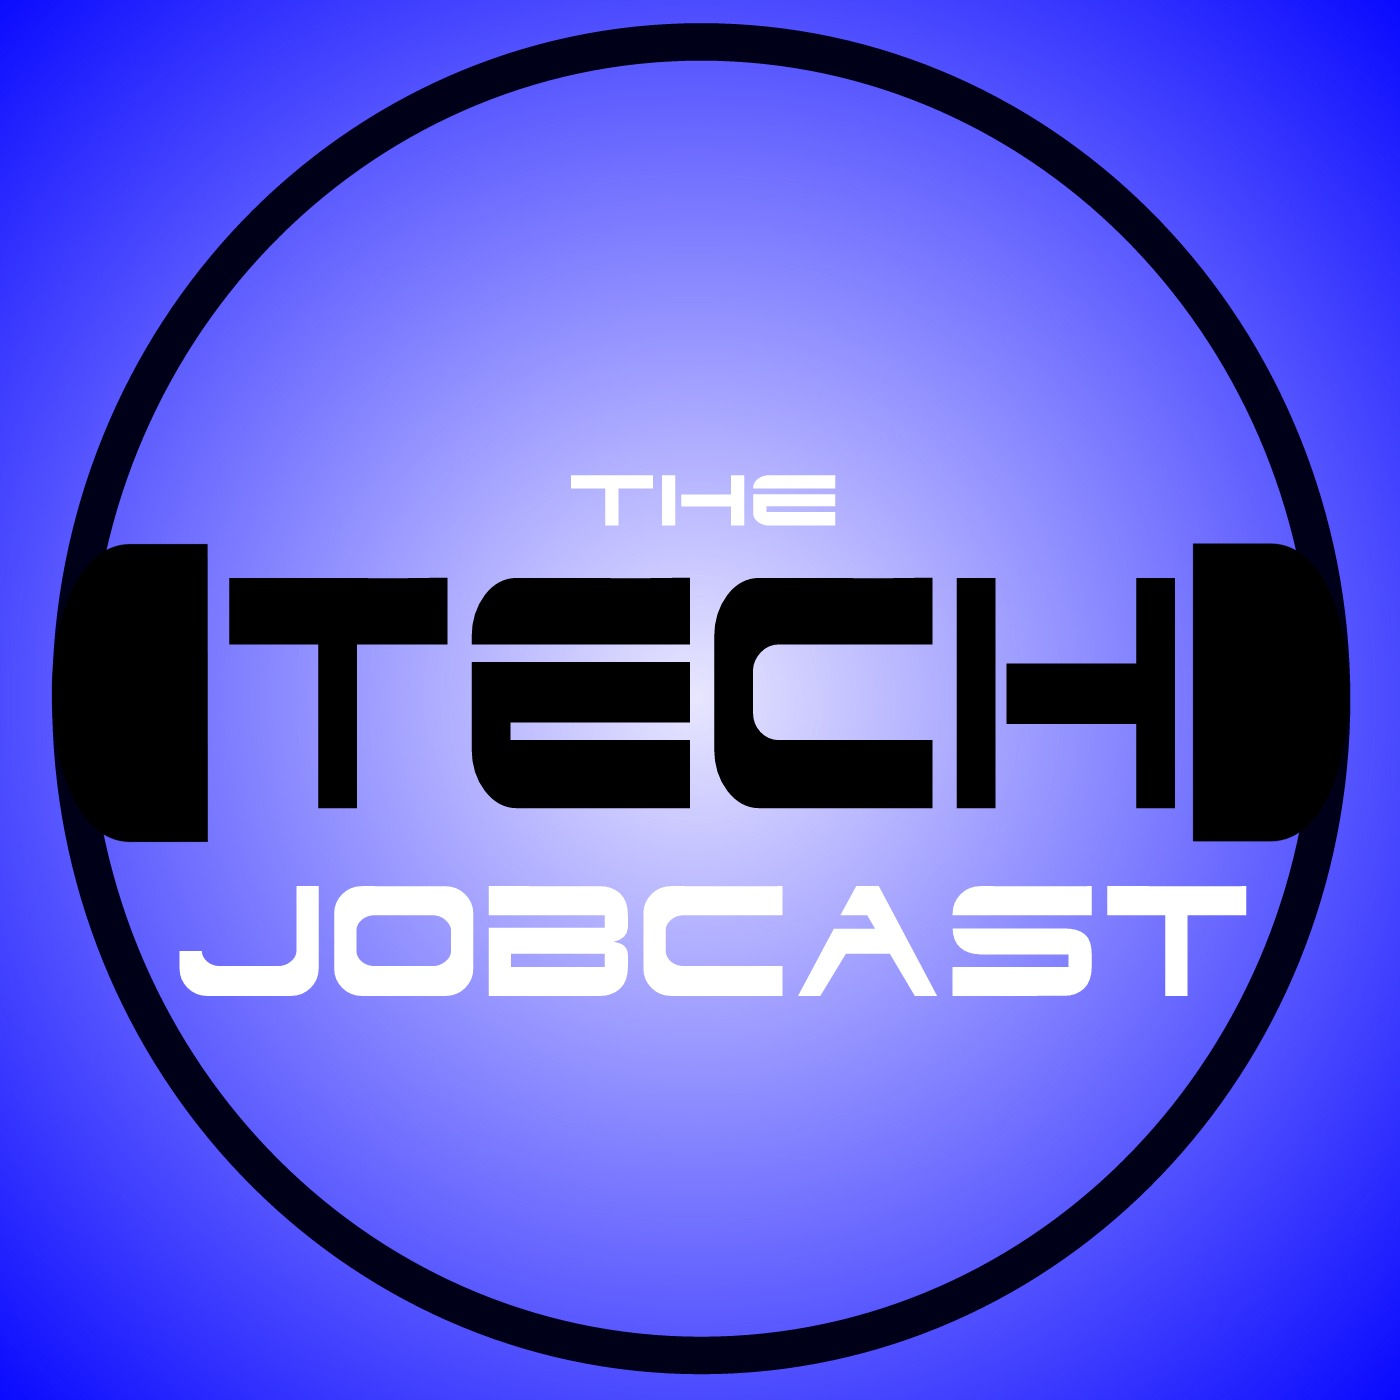 IT Job listings for the week of October 8, 2017